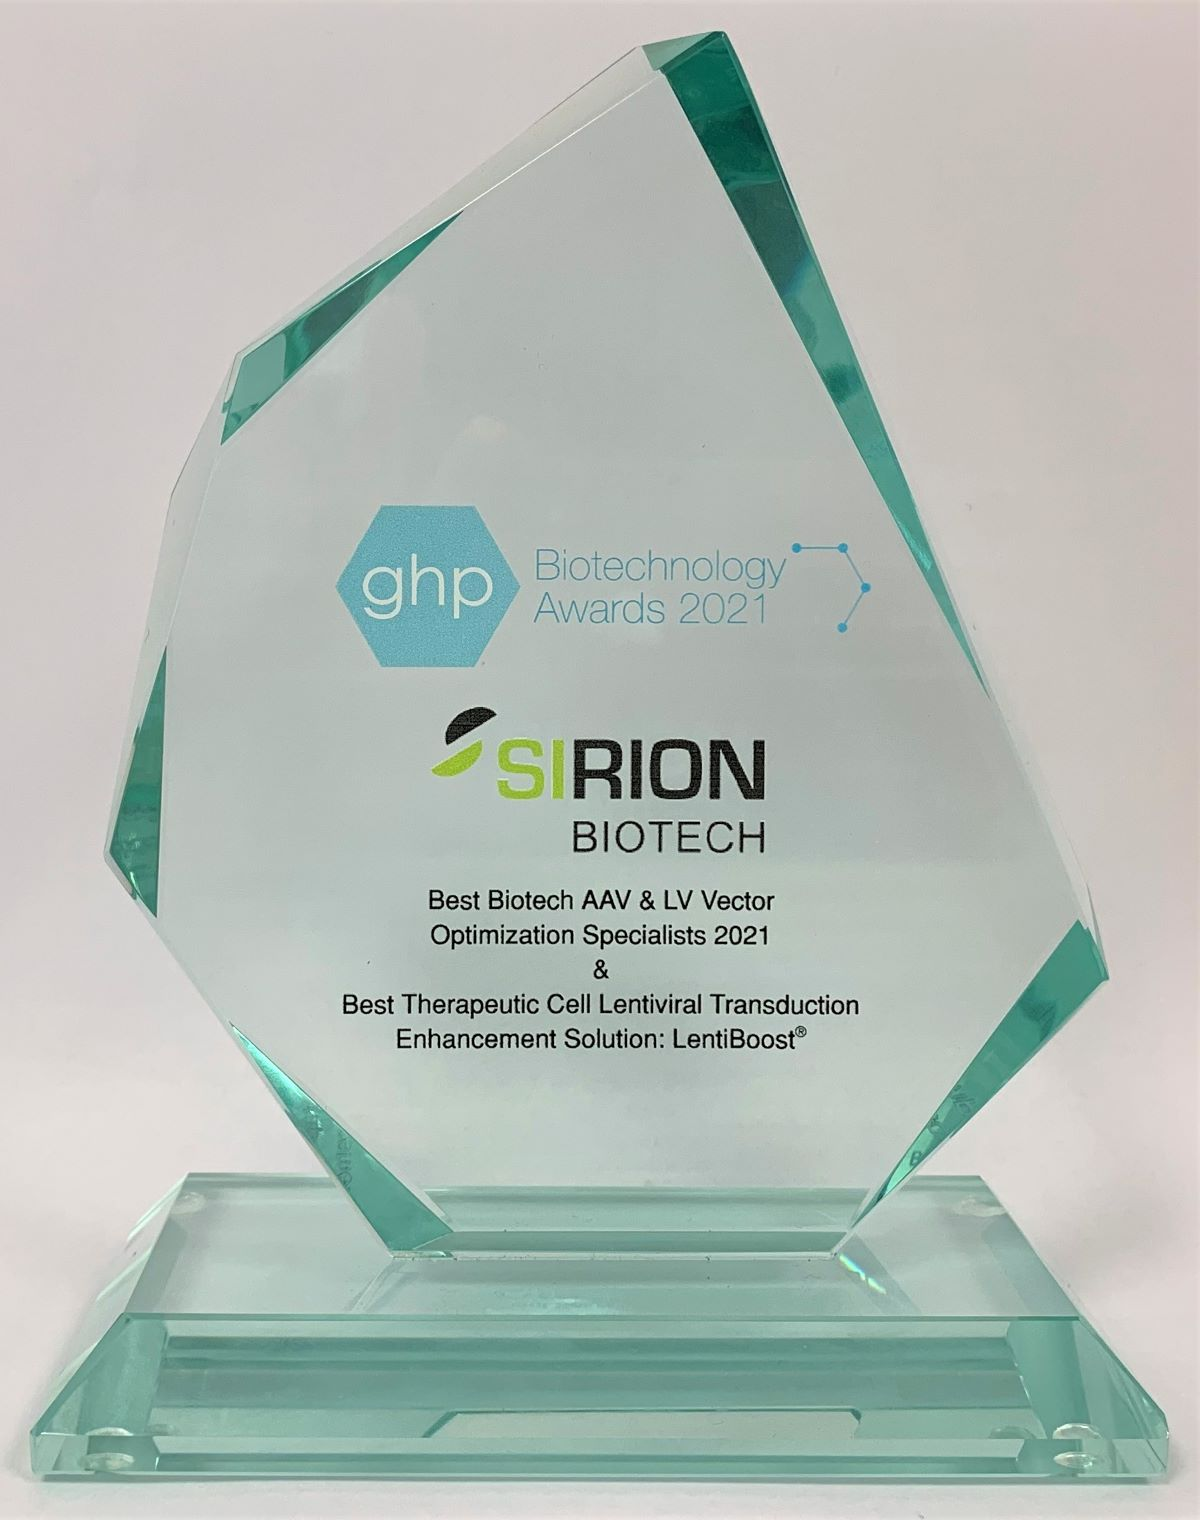 SIRION Biotech scoops double GHP Biotechnology Awards for 2021